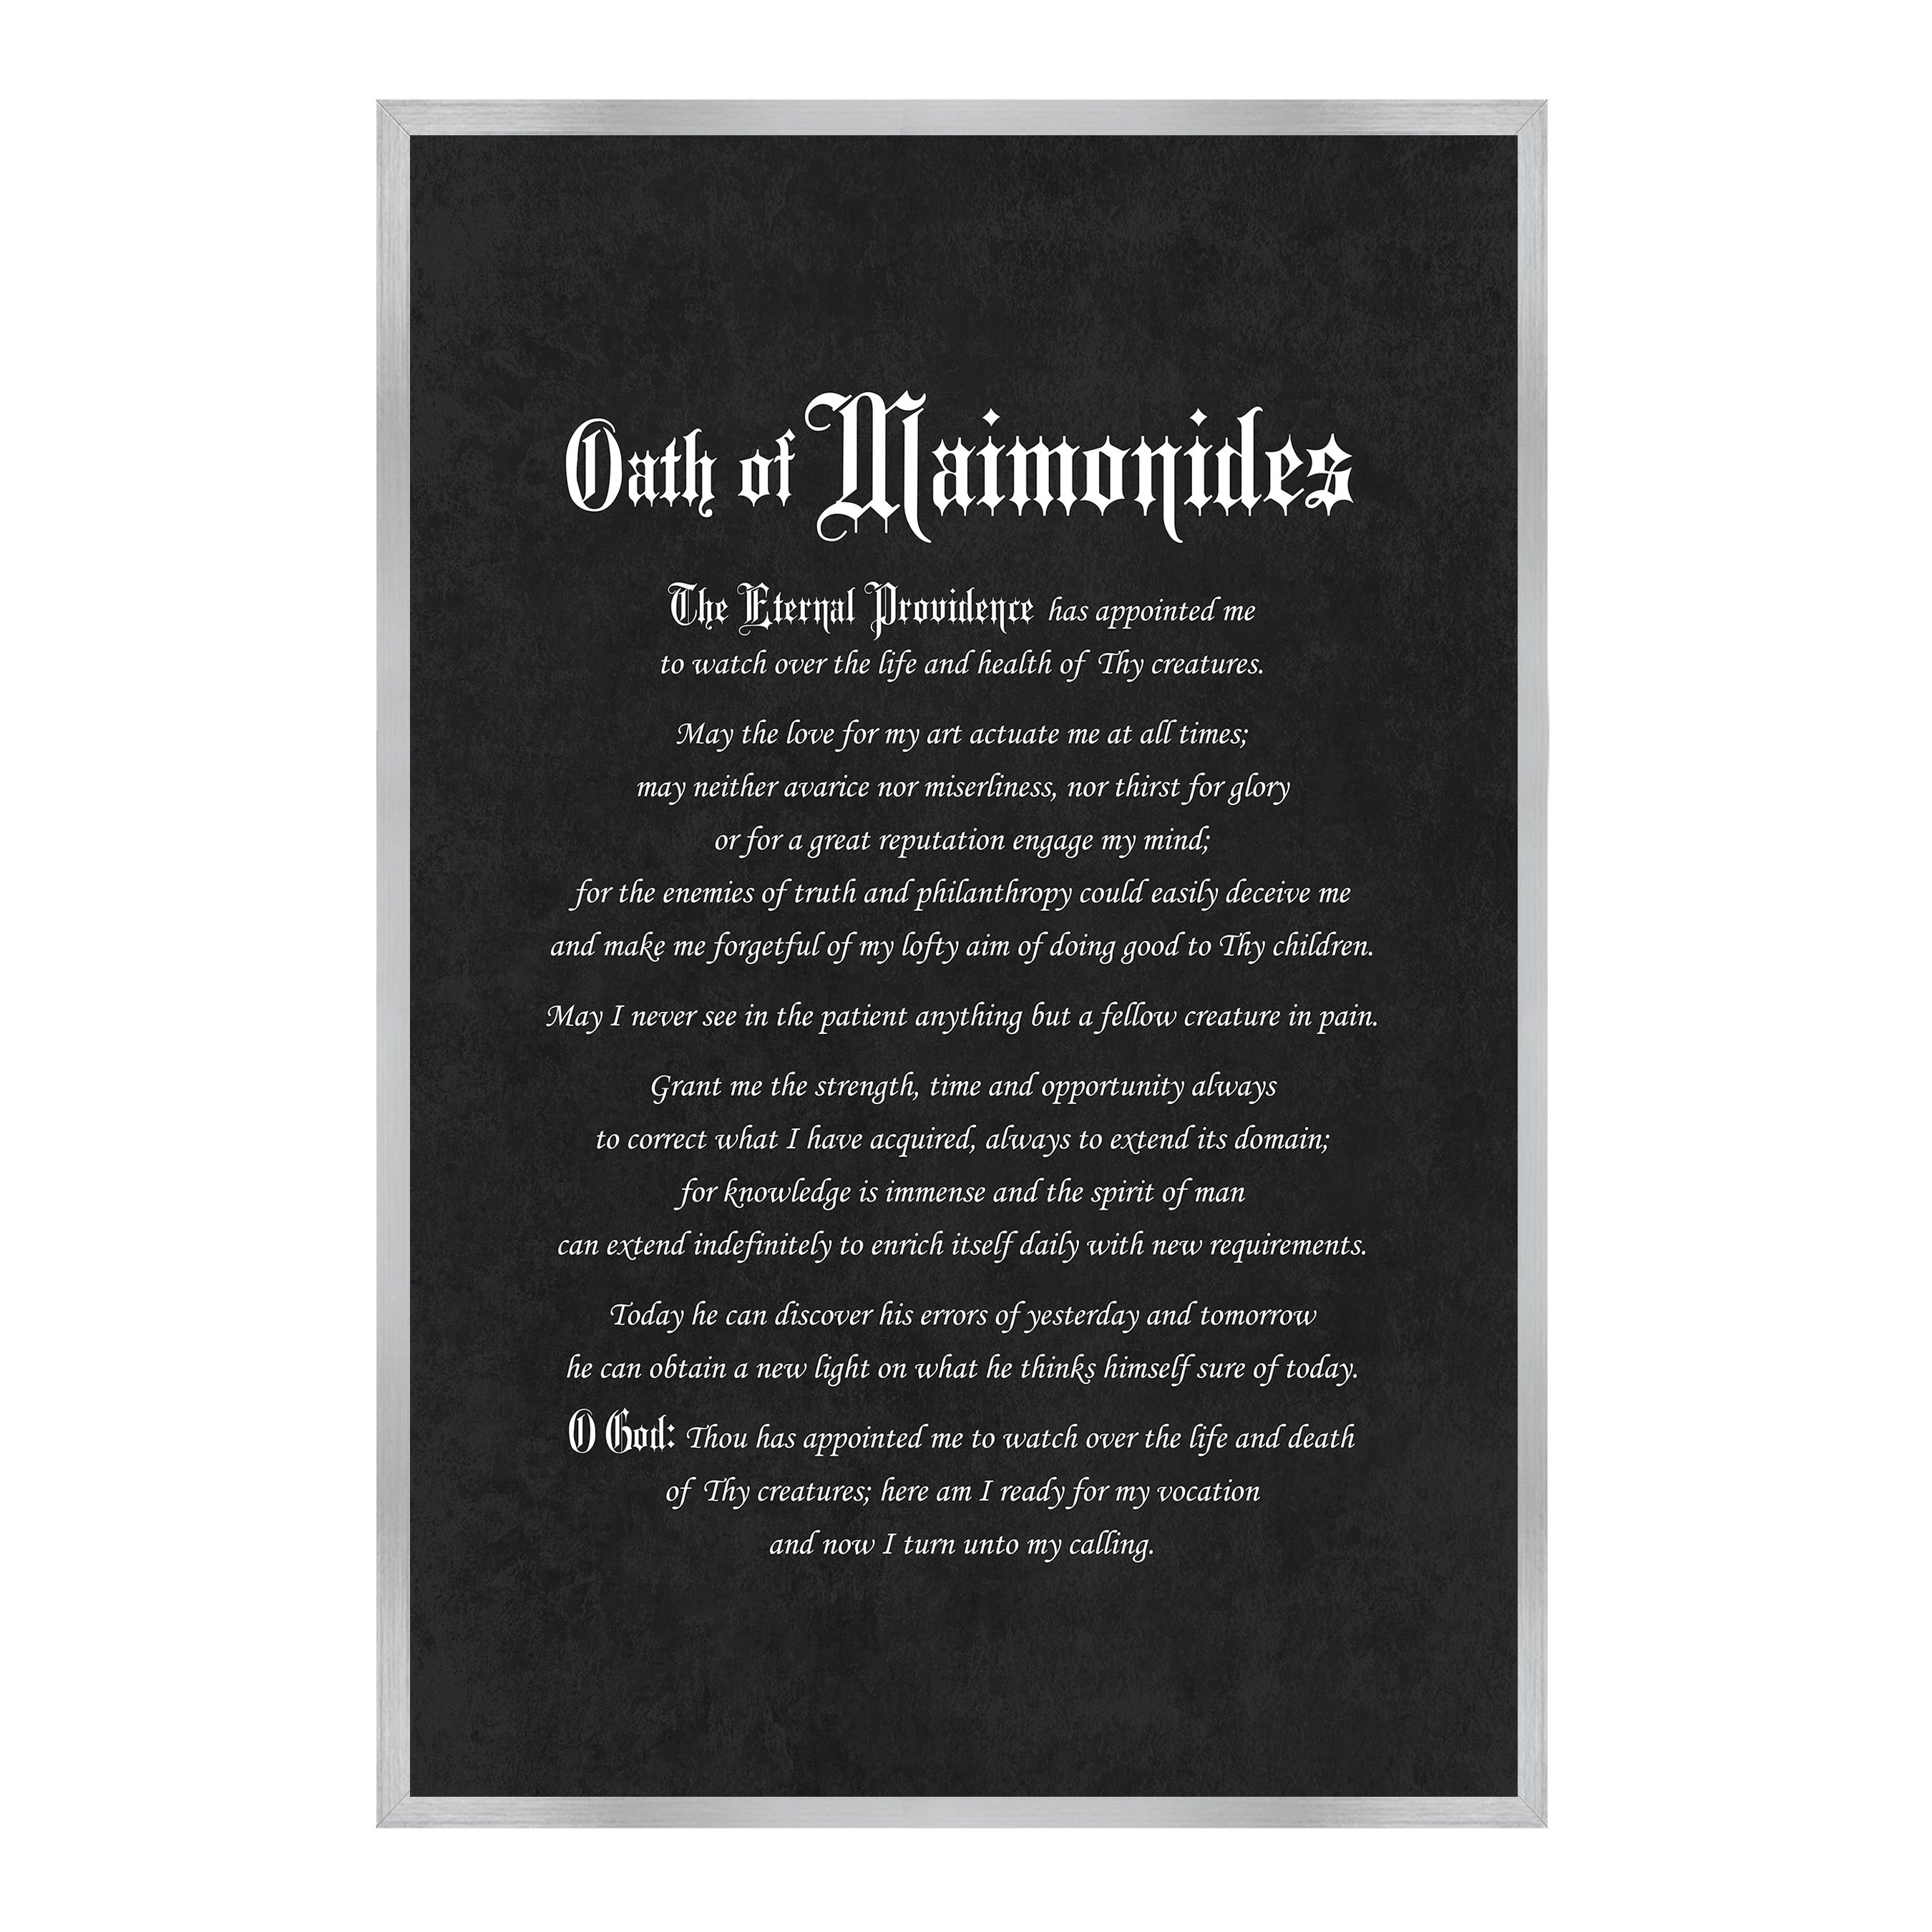 Maimonides Medical Oath, Hippocratic Oath, Medical Gifts, Gift for Doctor, Medical Decor, Medical Student, Office Decor, doctor office, Silver Frame